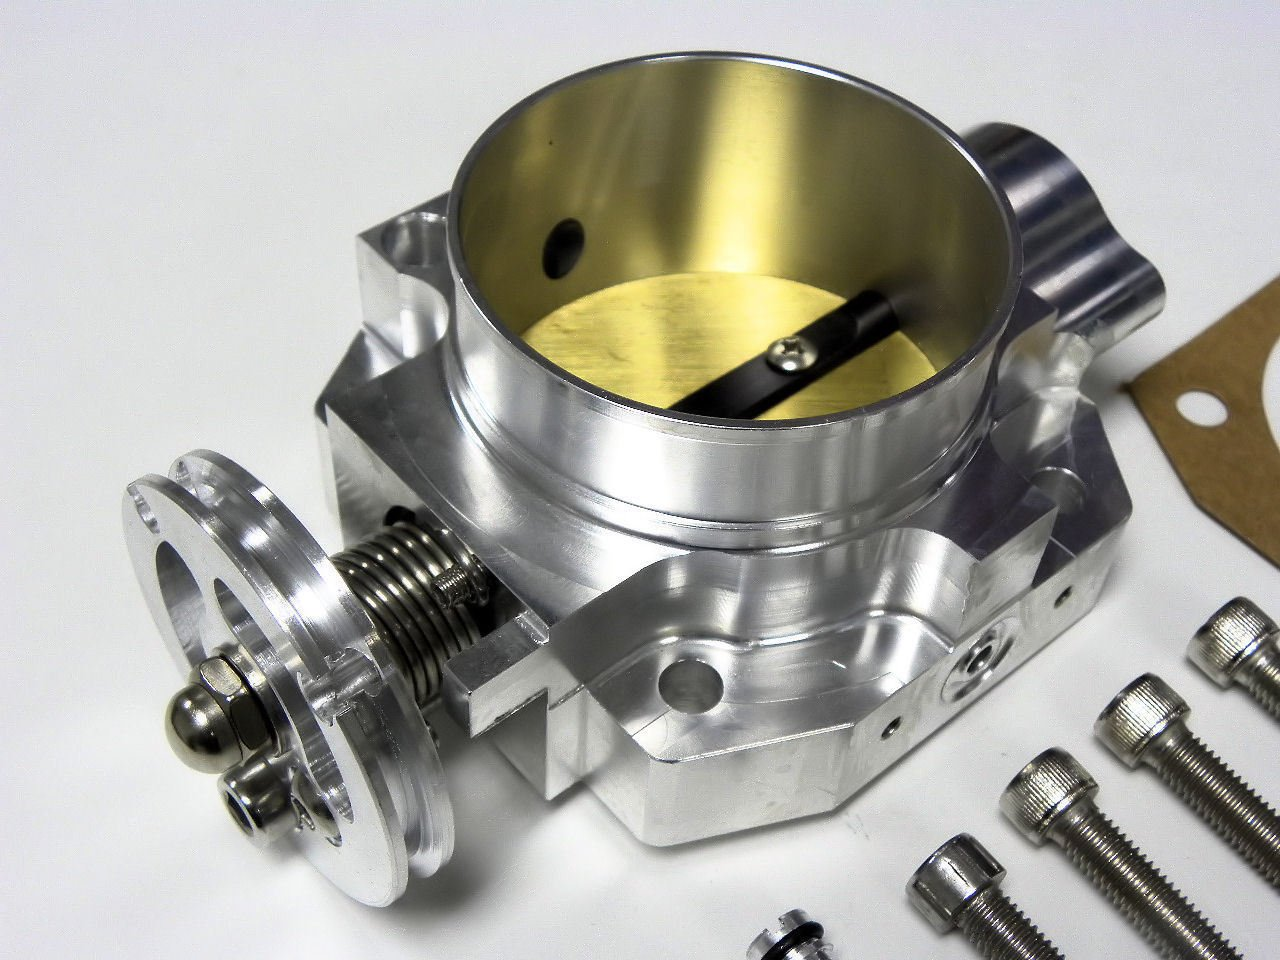 VMS BILLET THROTTLE BODY 70MM 70 MM HONDA CIVIC SI CRX INTEGRA GSR DIRECT FIT